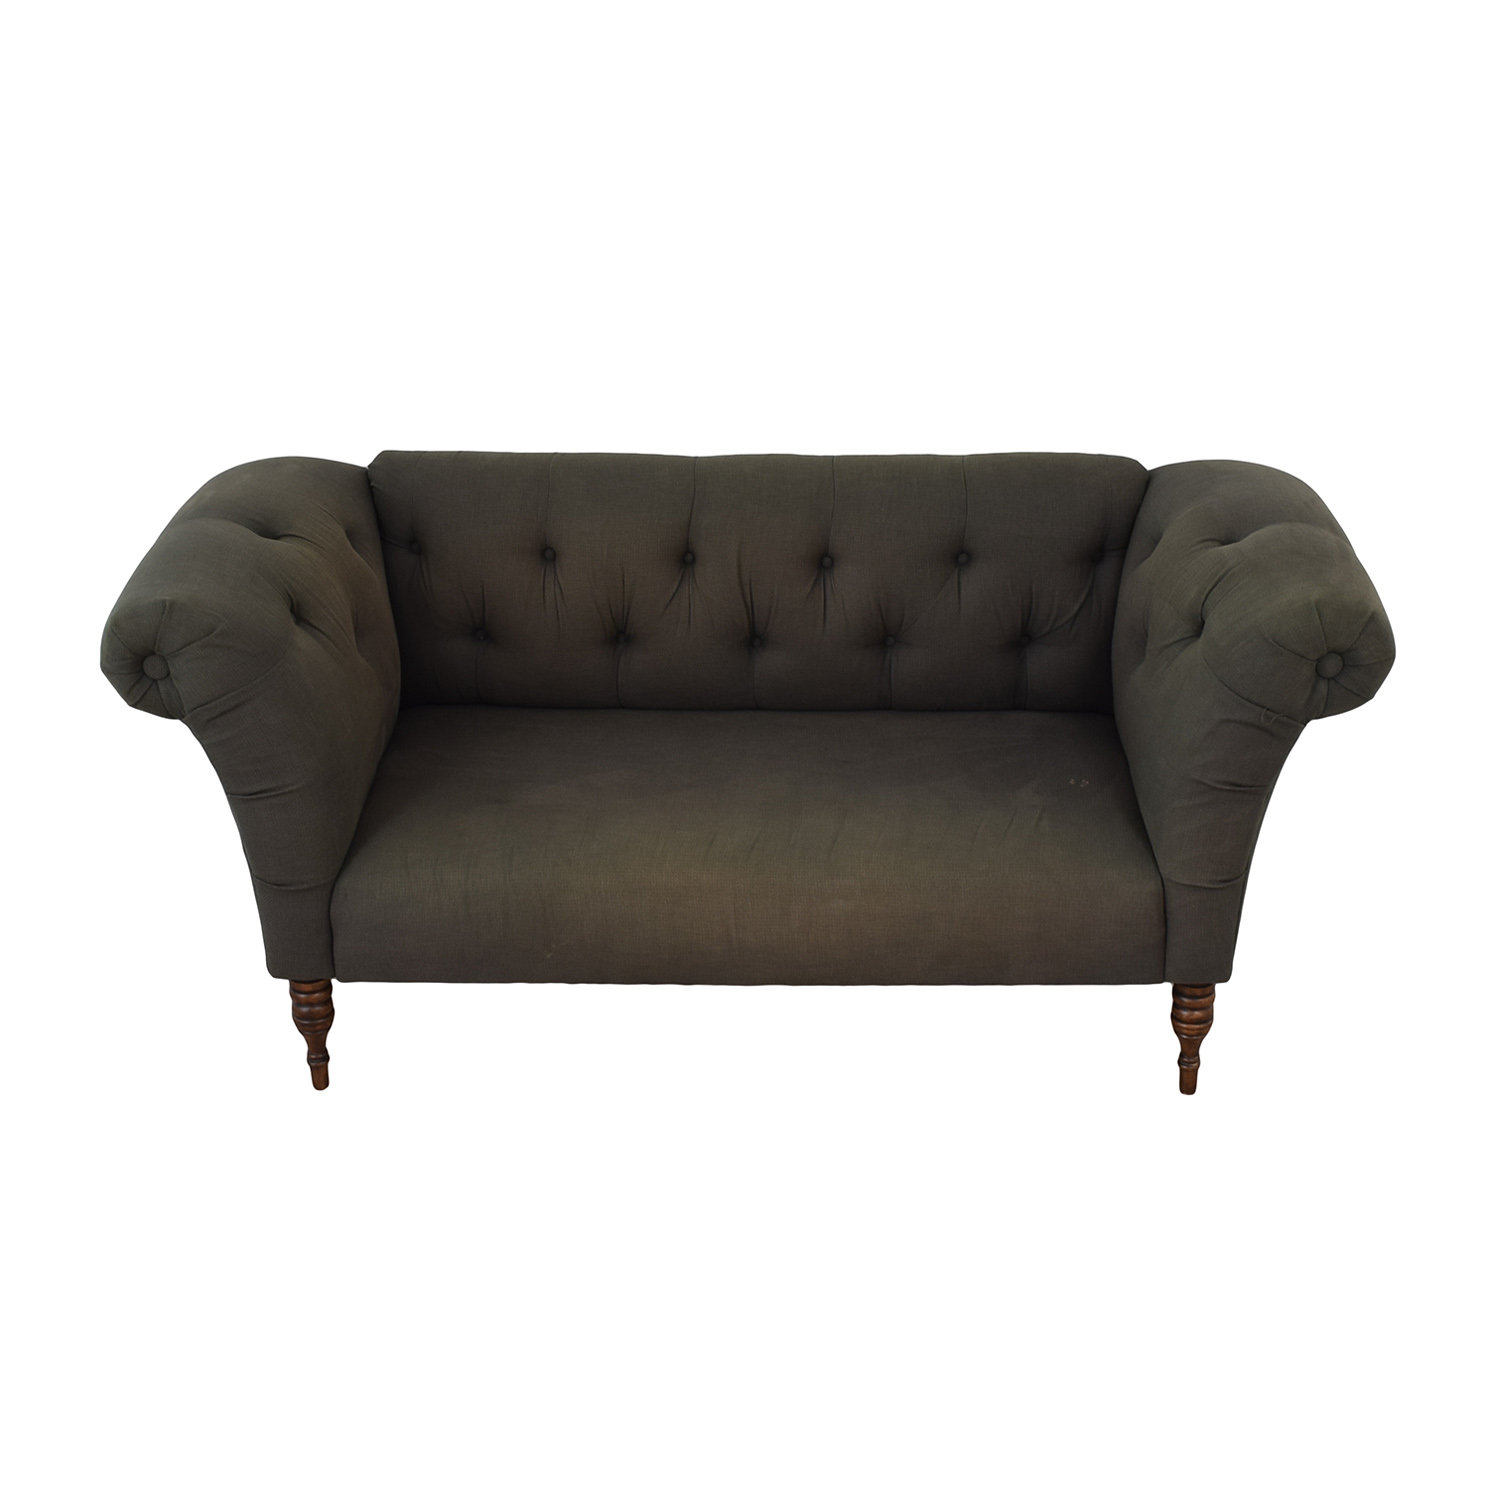 Urban Outfitters Urban Outfitters Grey Tufted Sofa on sale